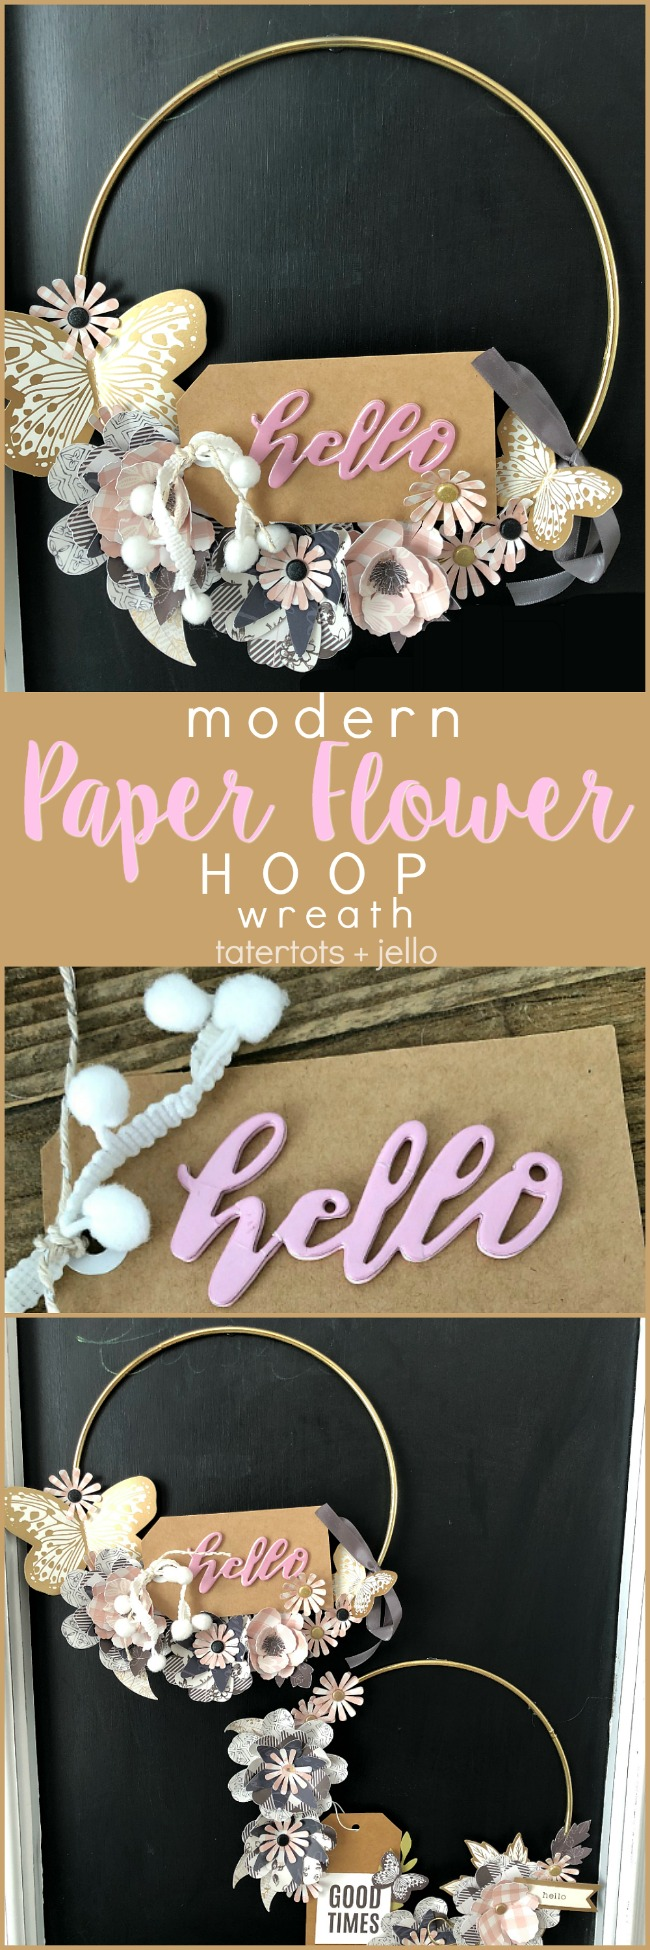 Modern Paper Flower Wreath - a beautiful gift idea or a striking wall hanging for your home!